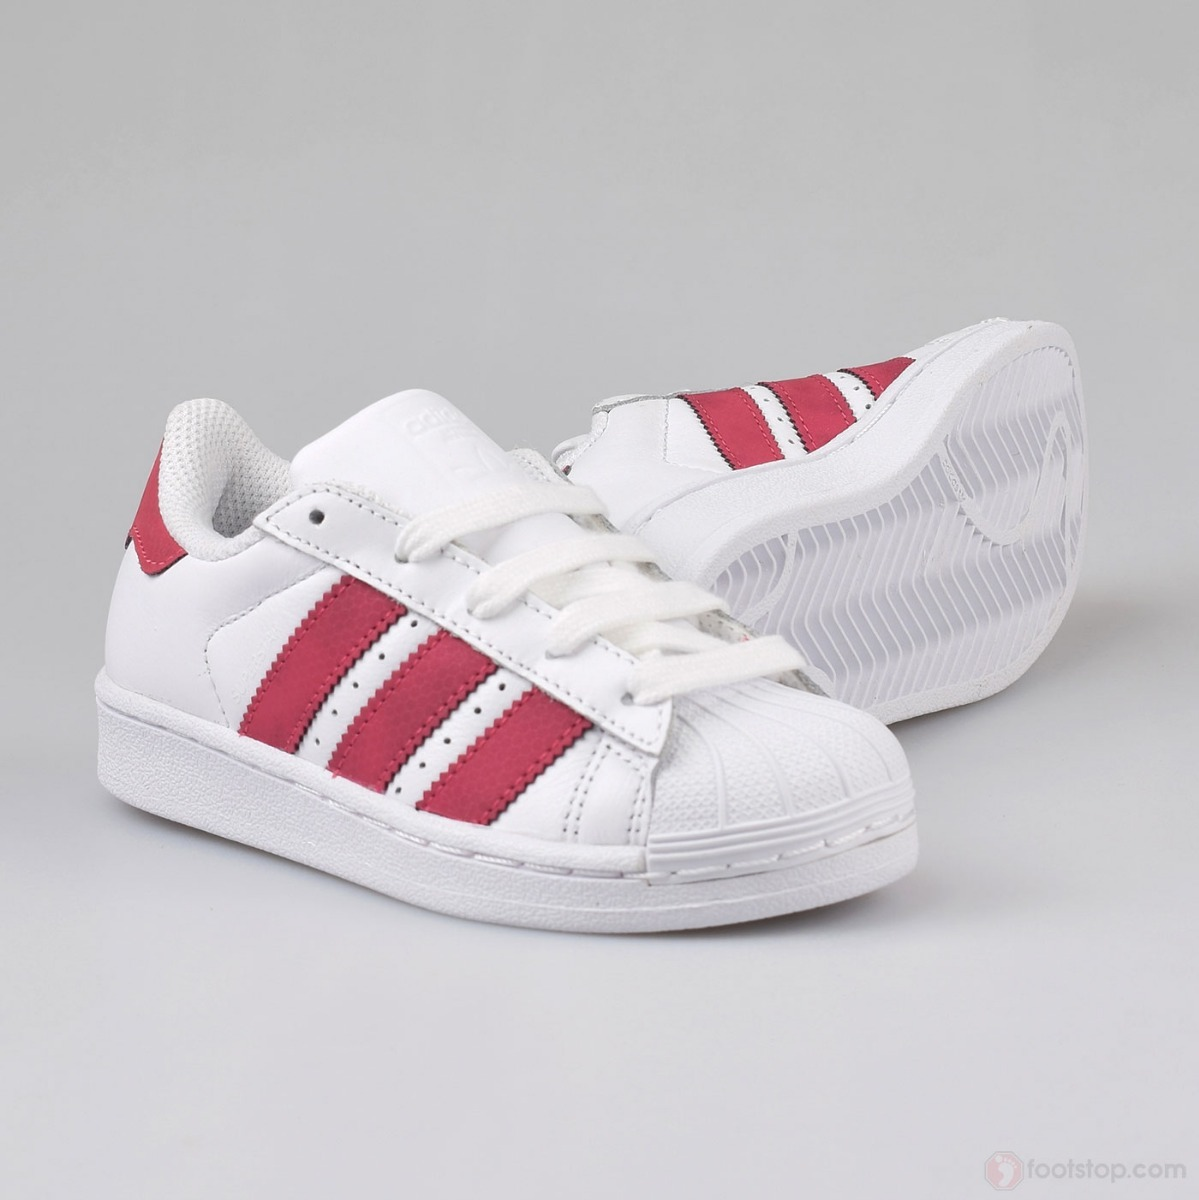 new product 0b415 a0d7f adidas Superstar C Cq2723 Niña -   30.000 en Mercado Libre